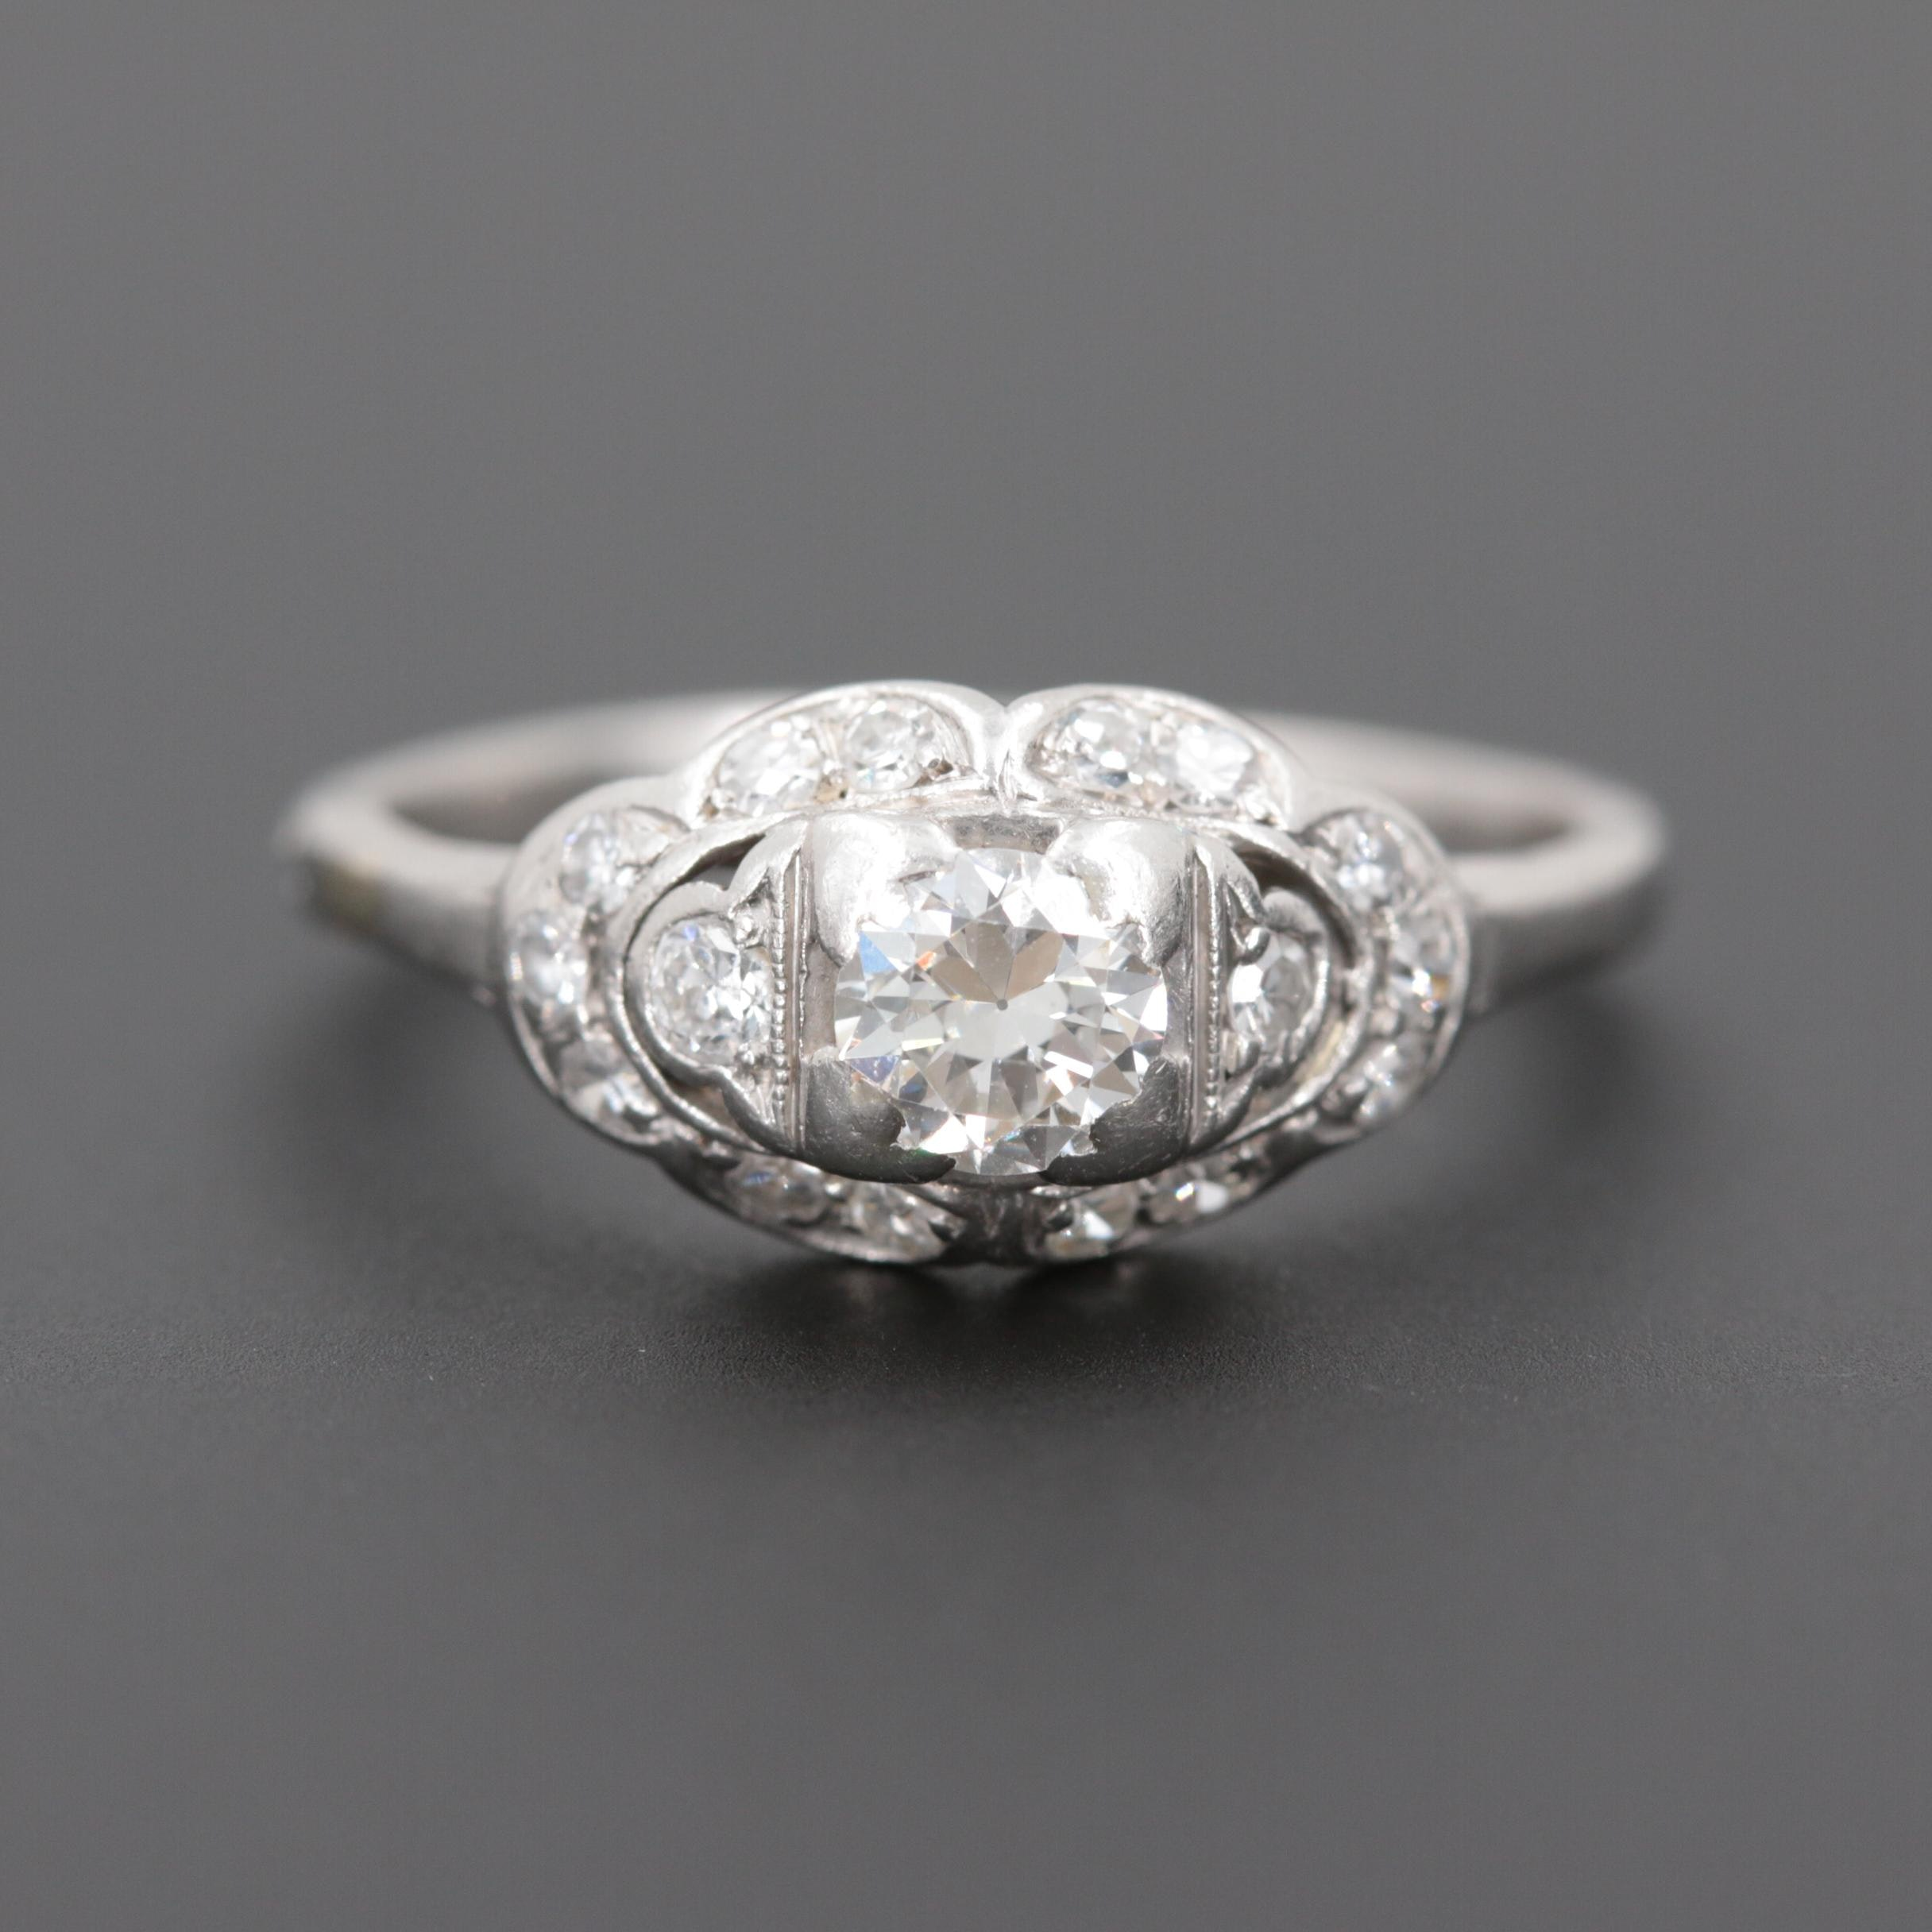 Circa 1930s Platinum Diamond Ring